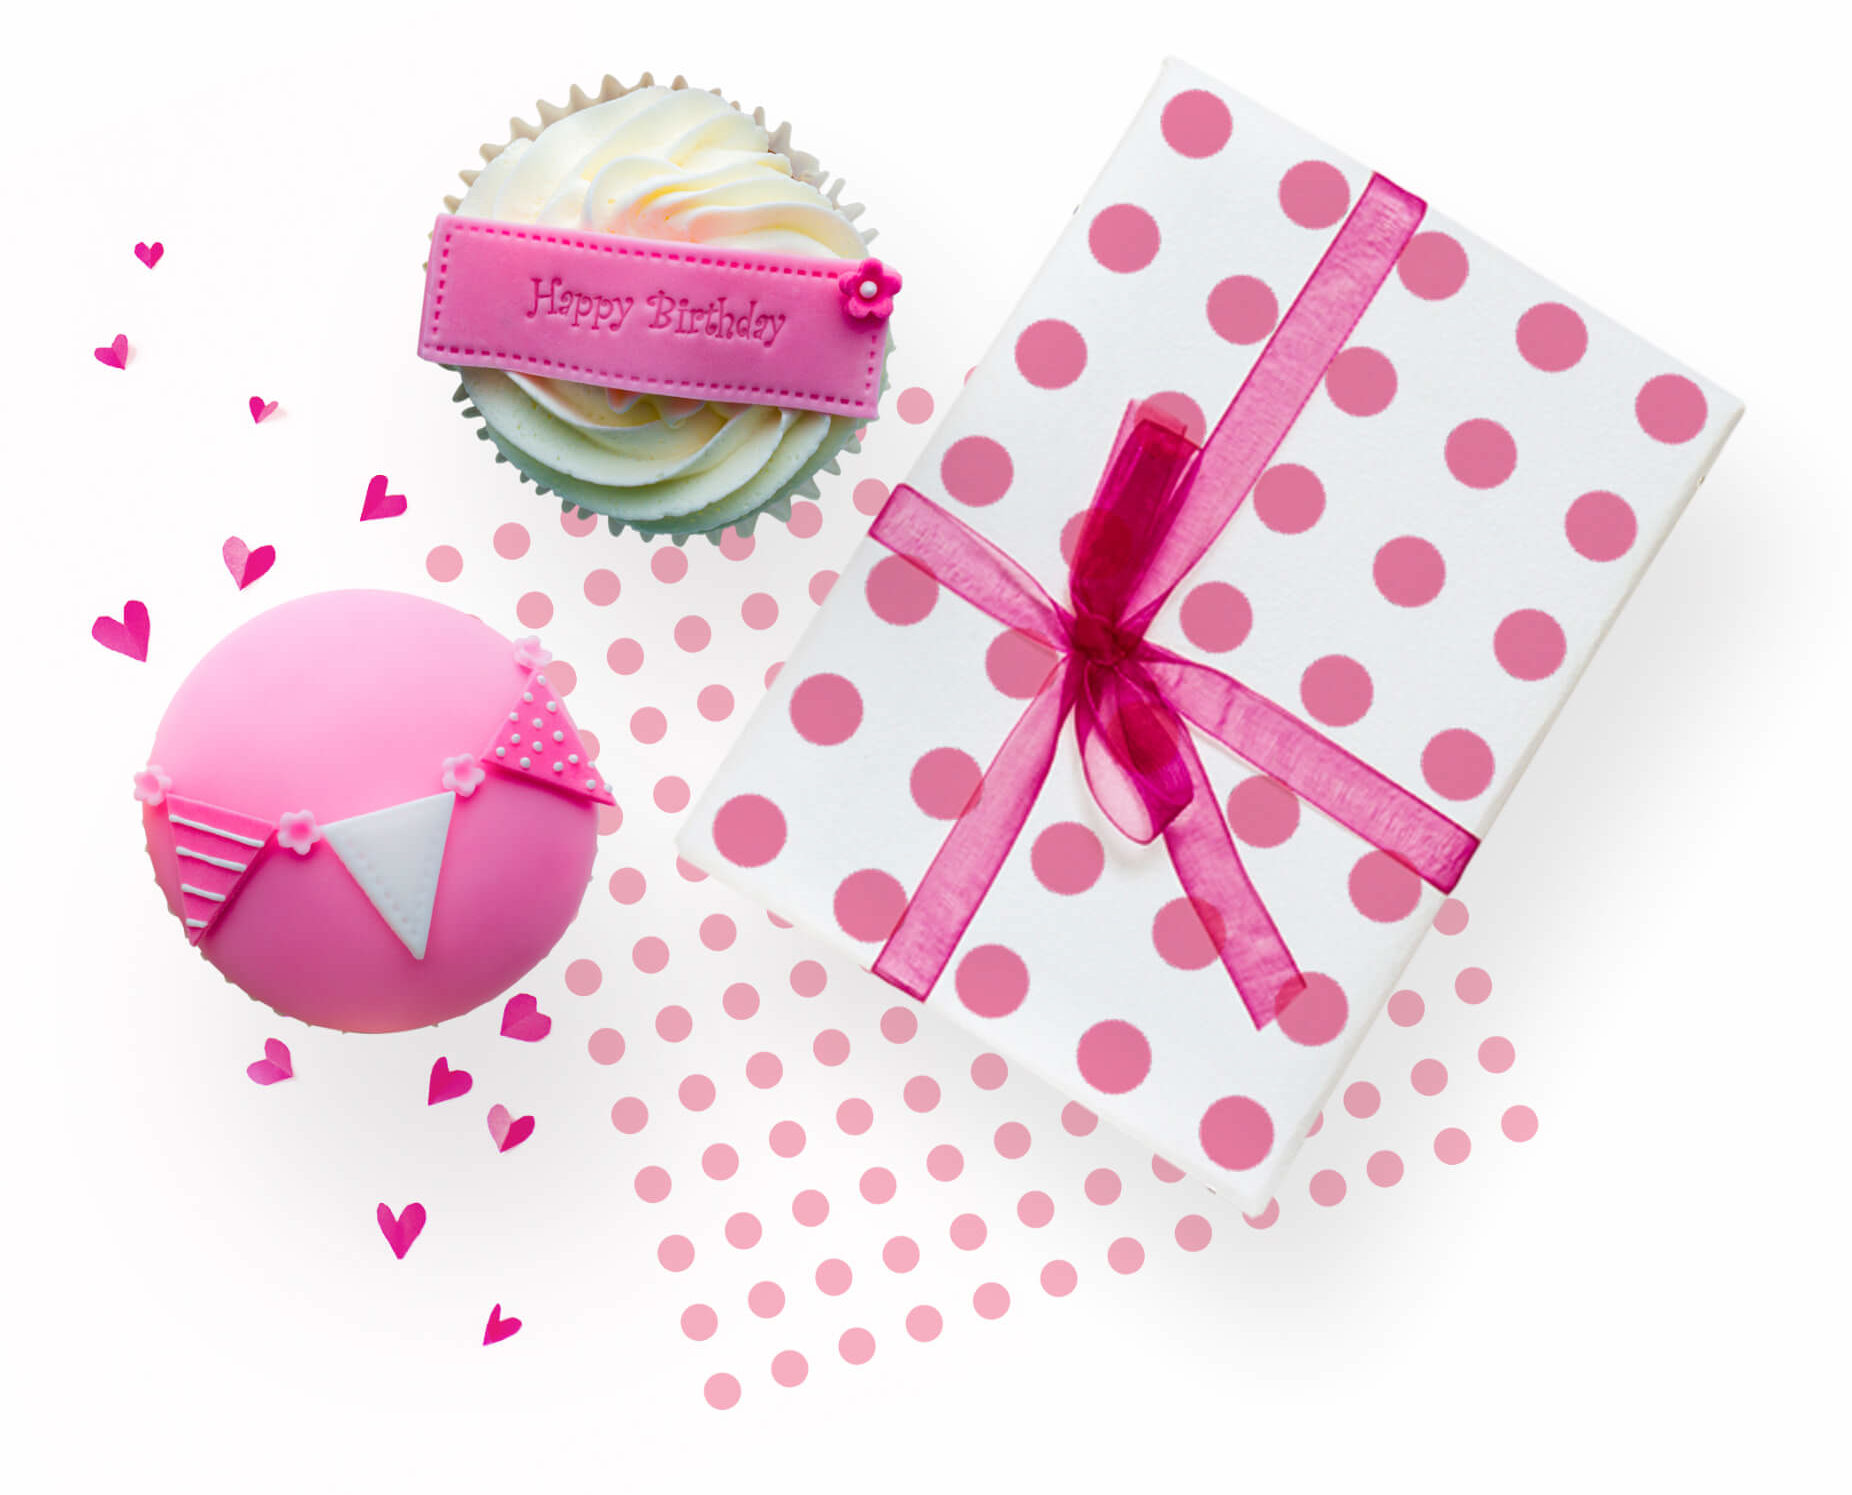 Birthday Cupcakes and Presents